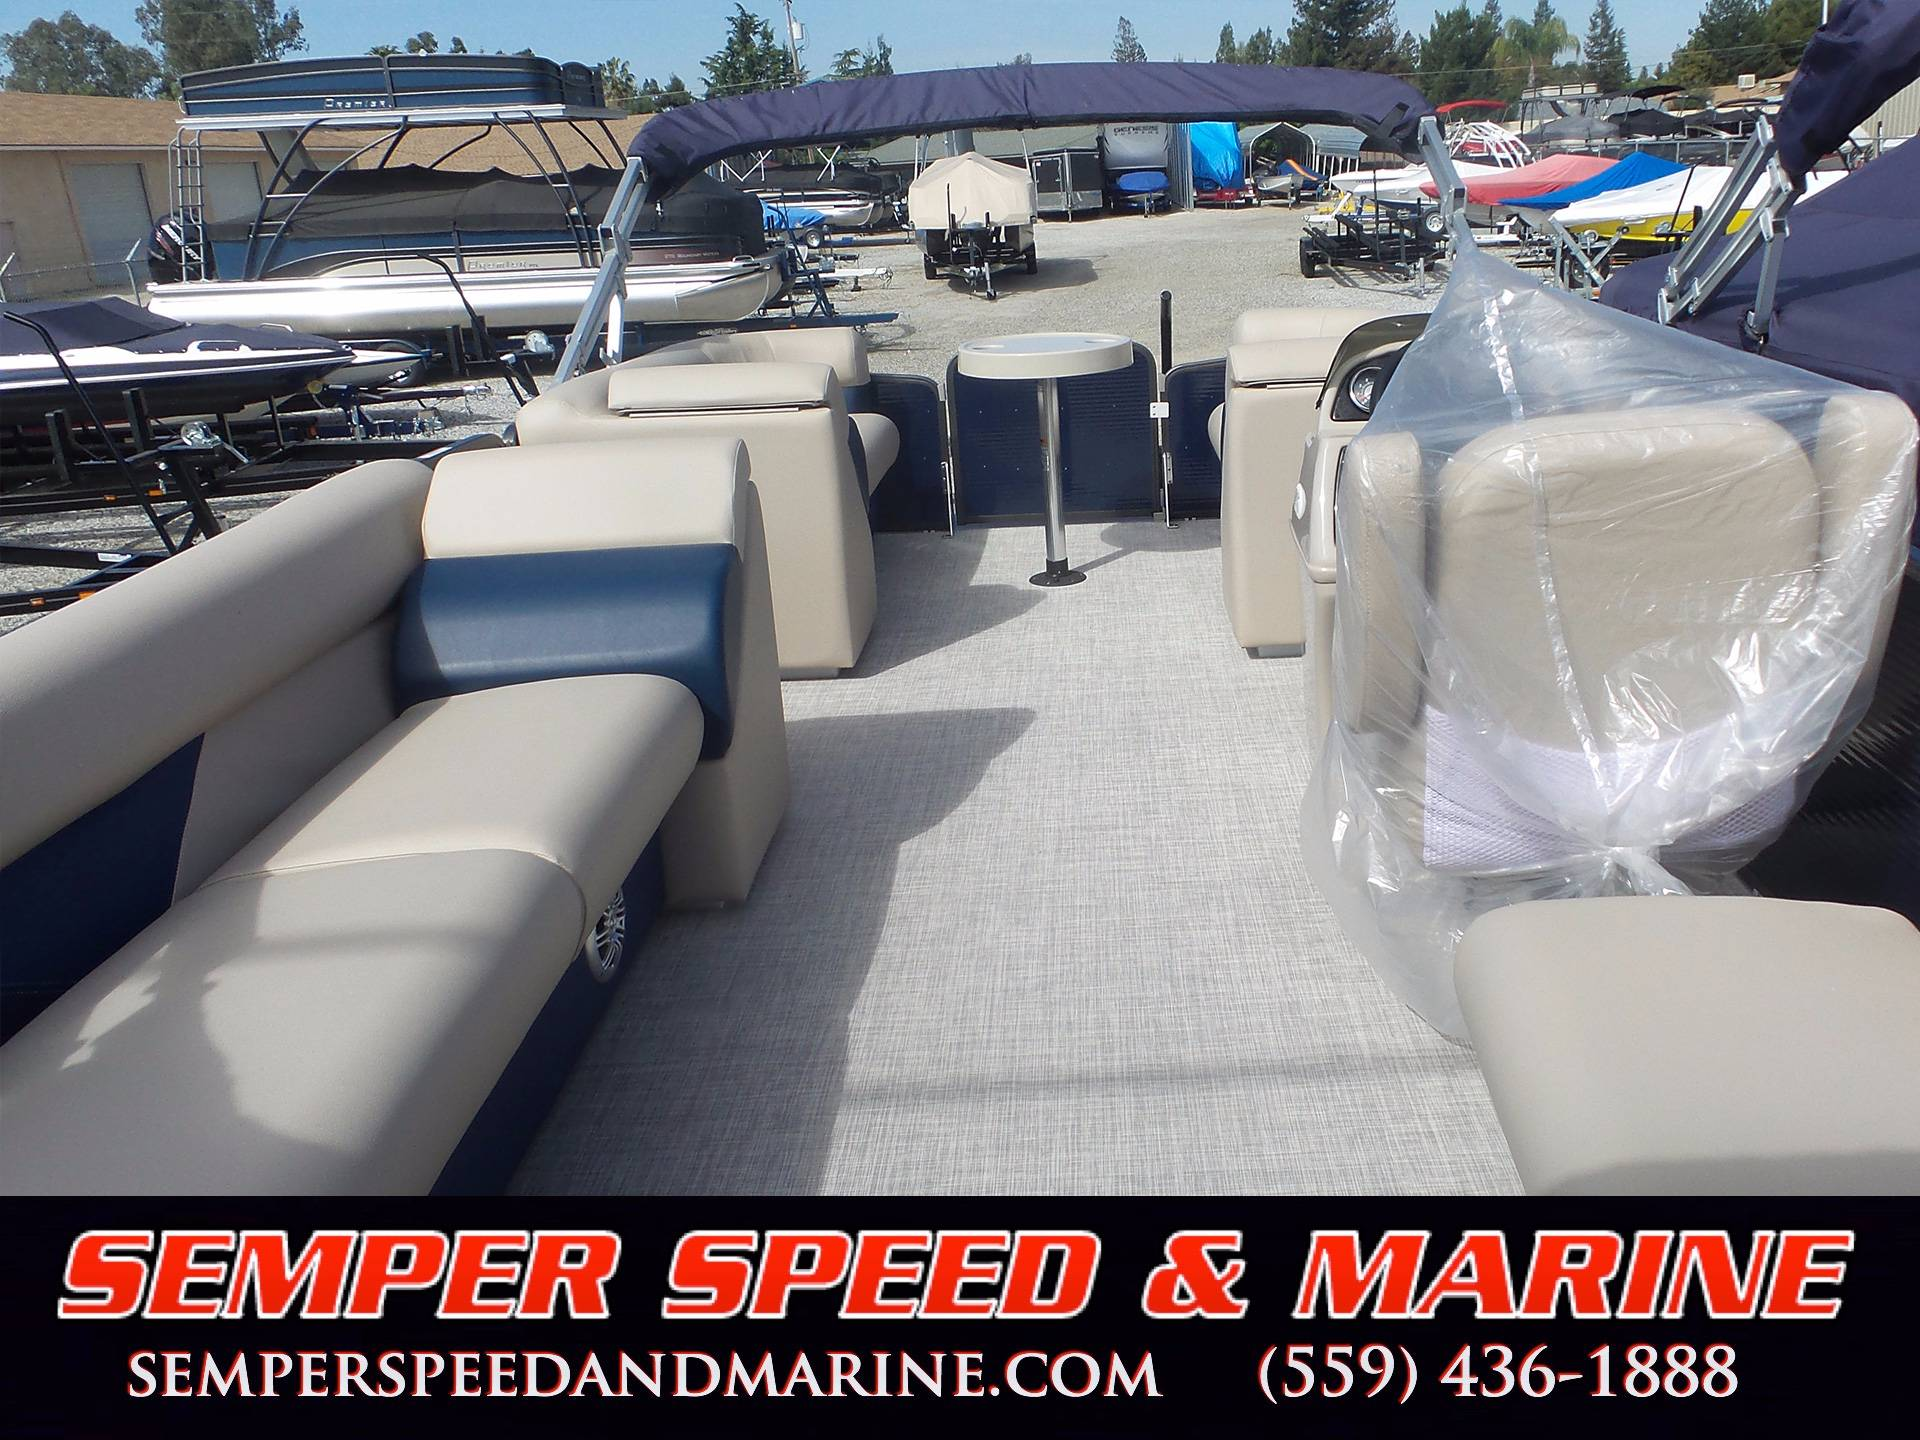 2017 Premier Palm Beach 220 Cruise RF in Madera, California